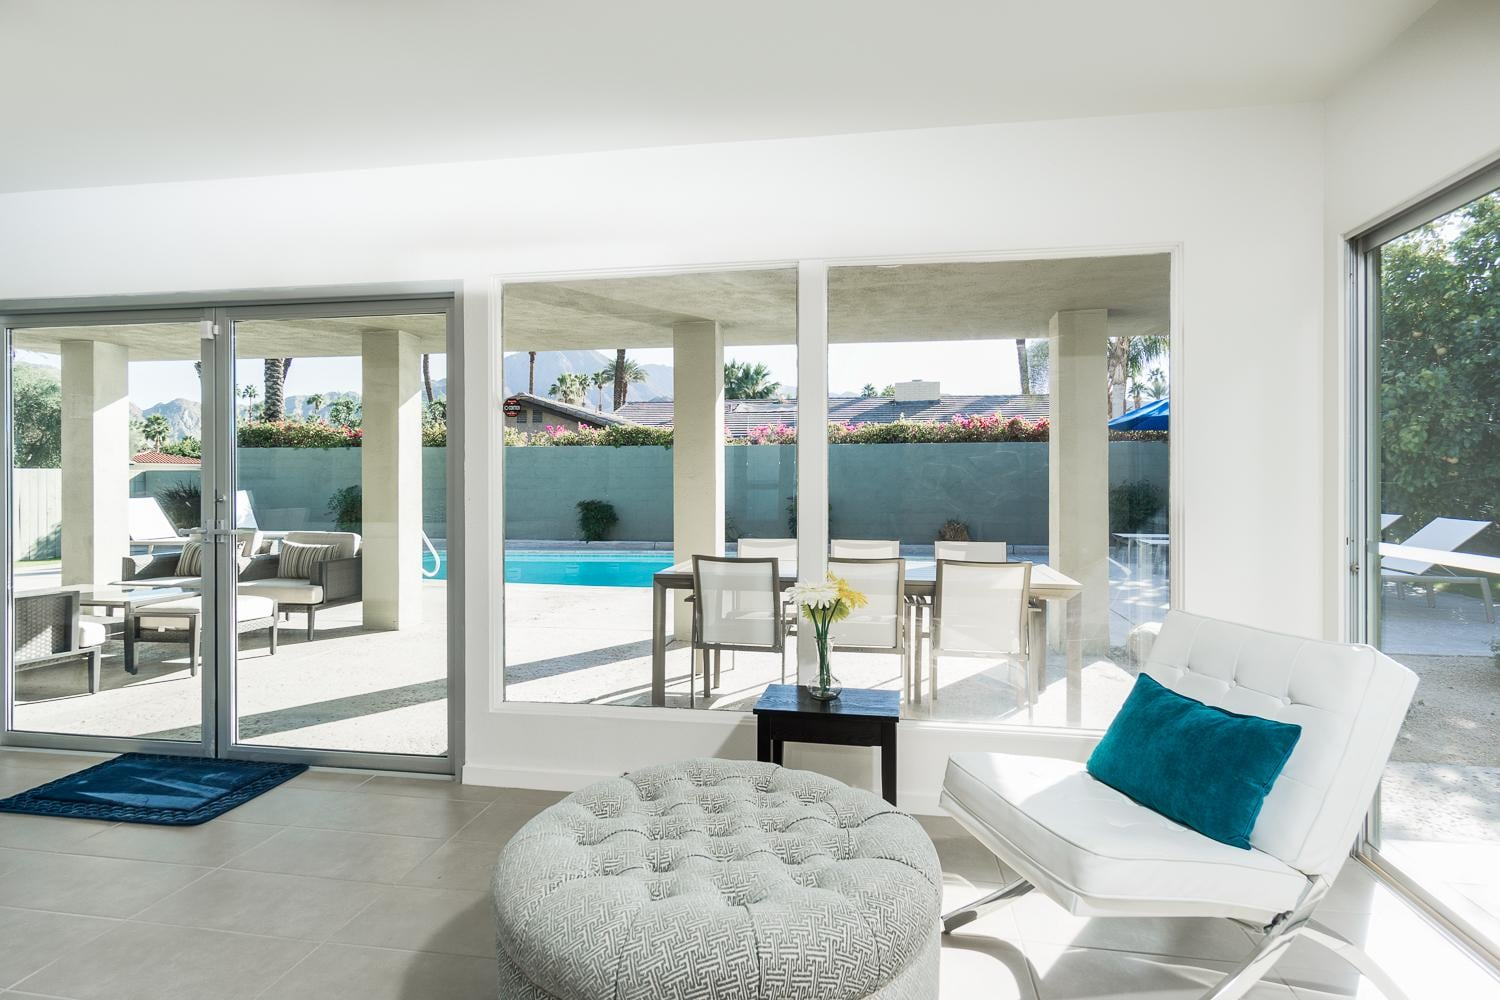 The living room invites you to lounge on a white leather sofa amid pool views